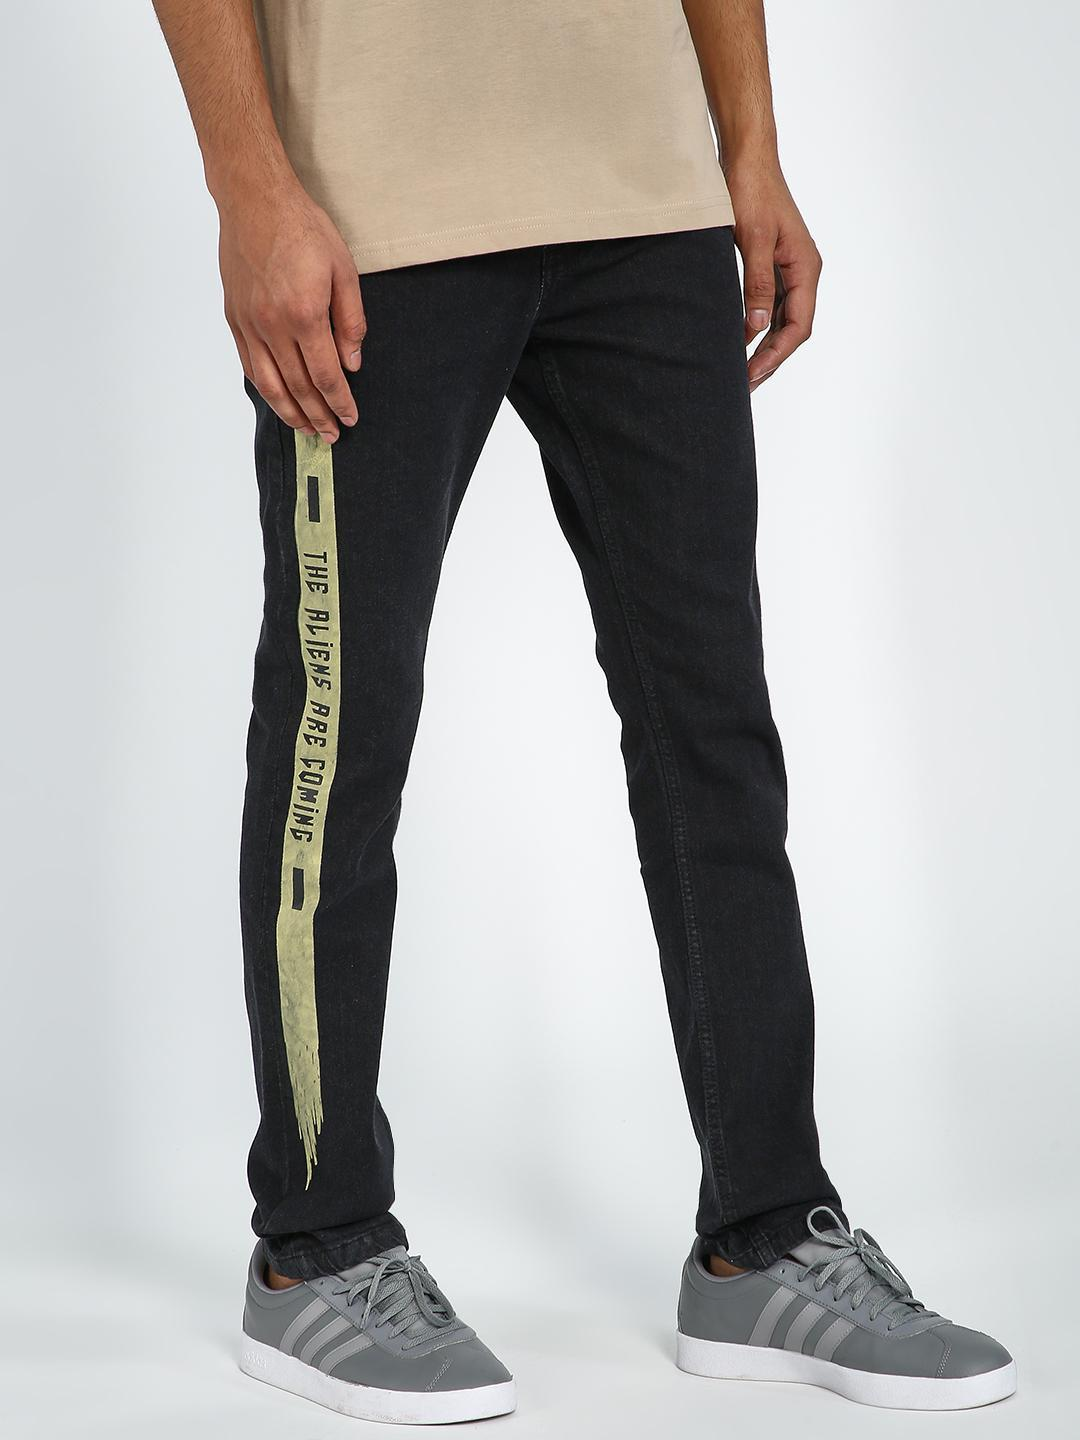 Blue Saint Black Text Printed Slim Jeans 1